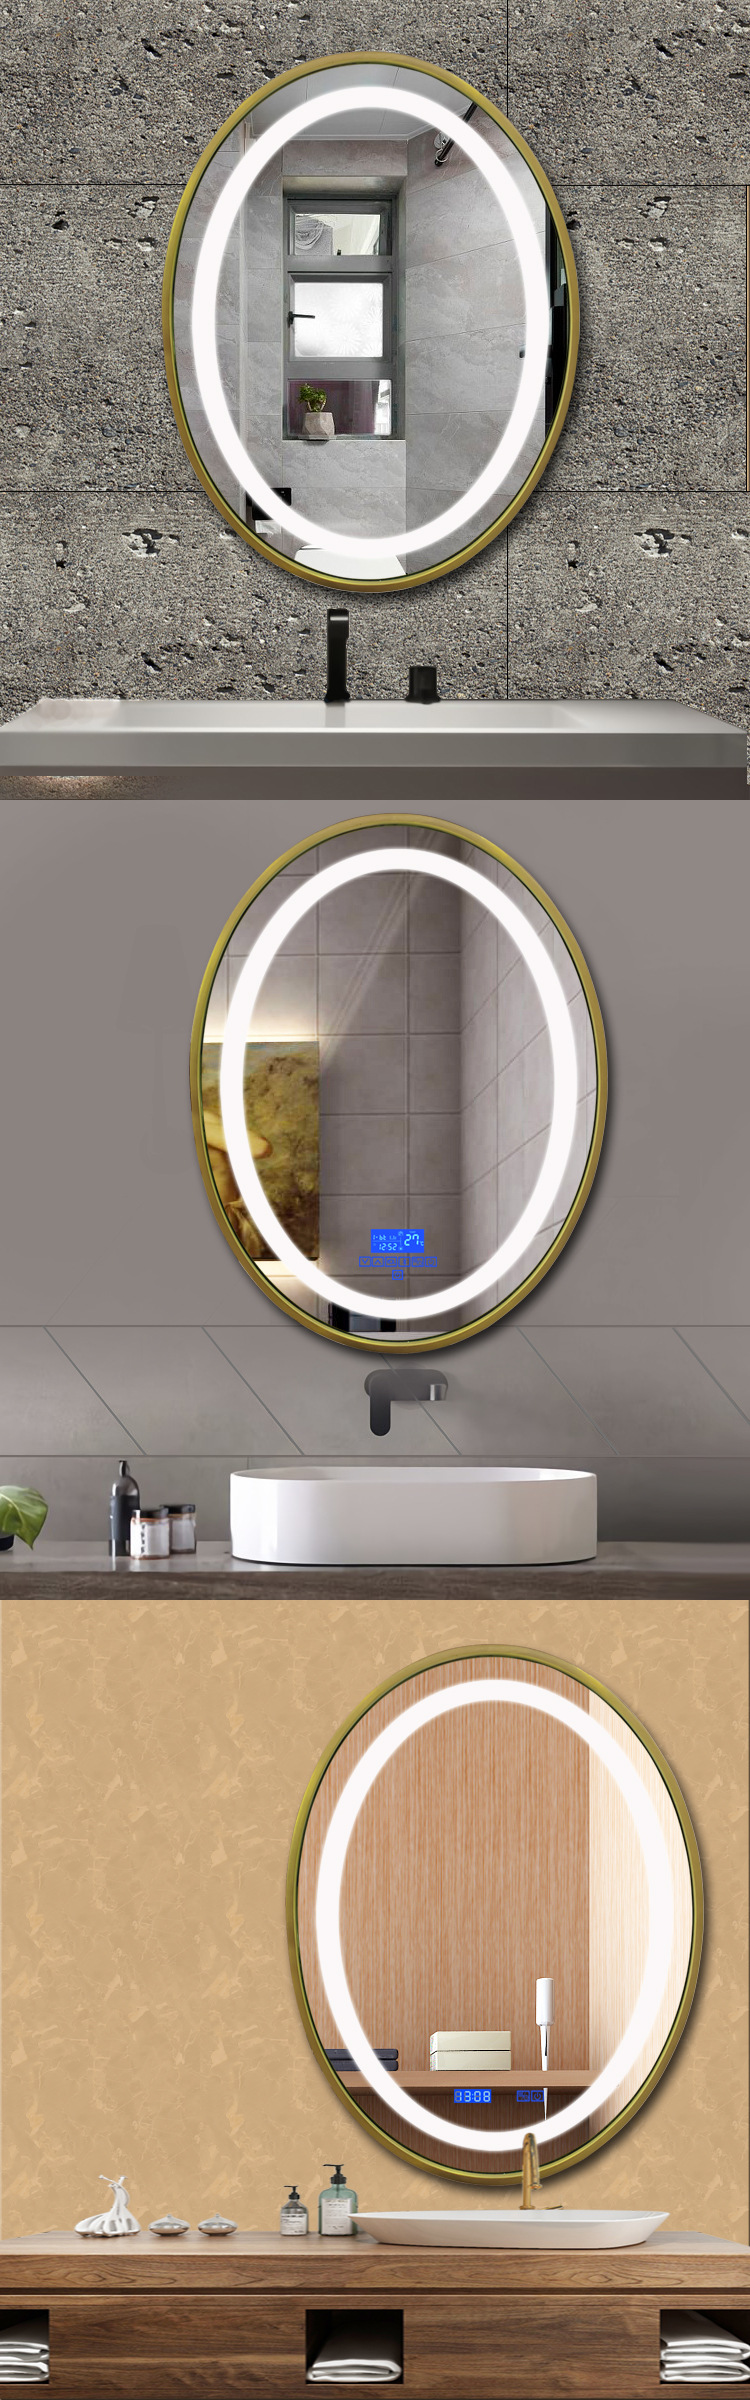 Application Led Light Up Mirror